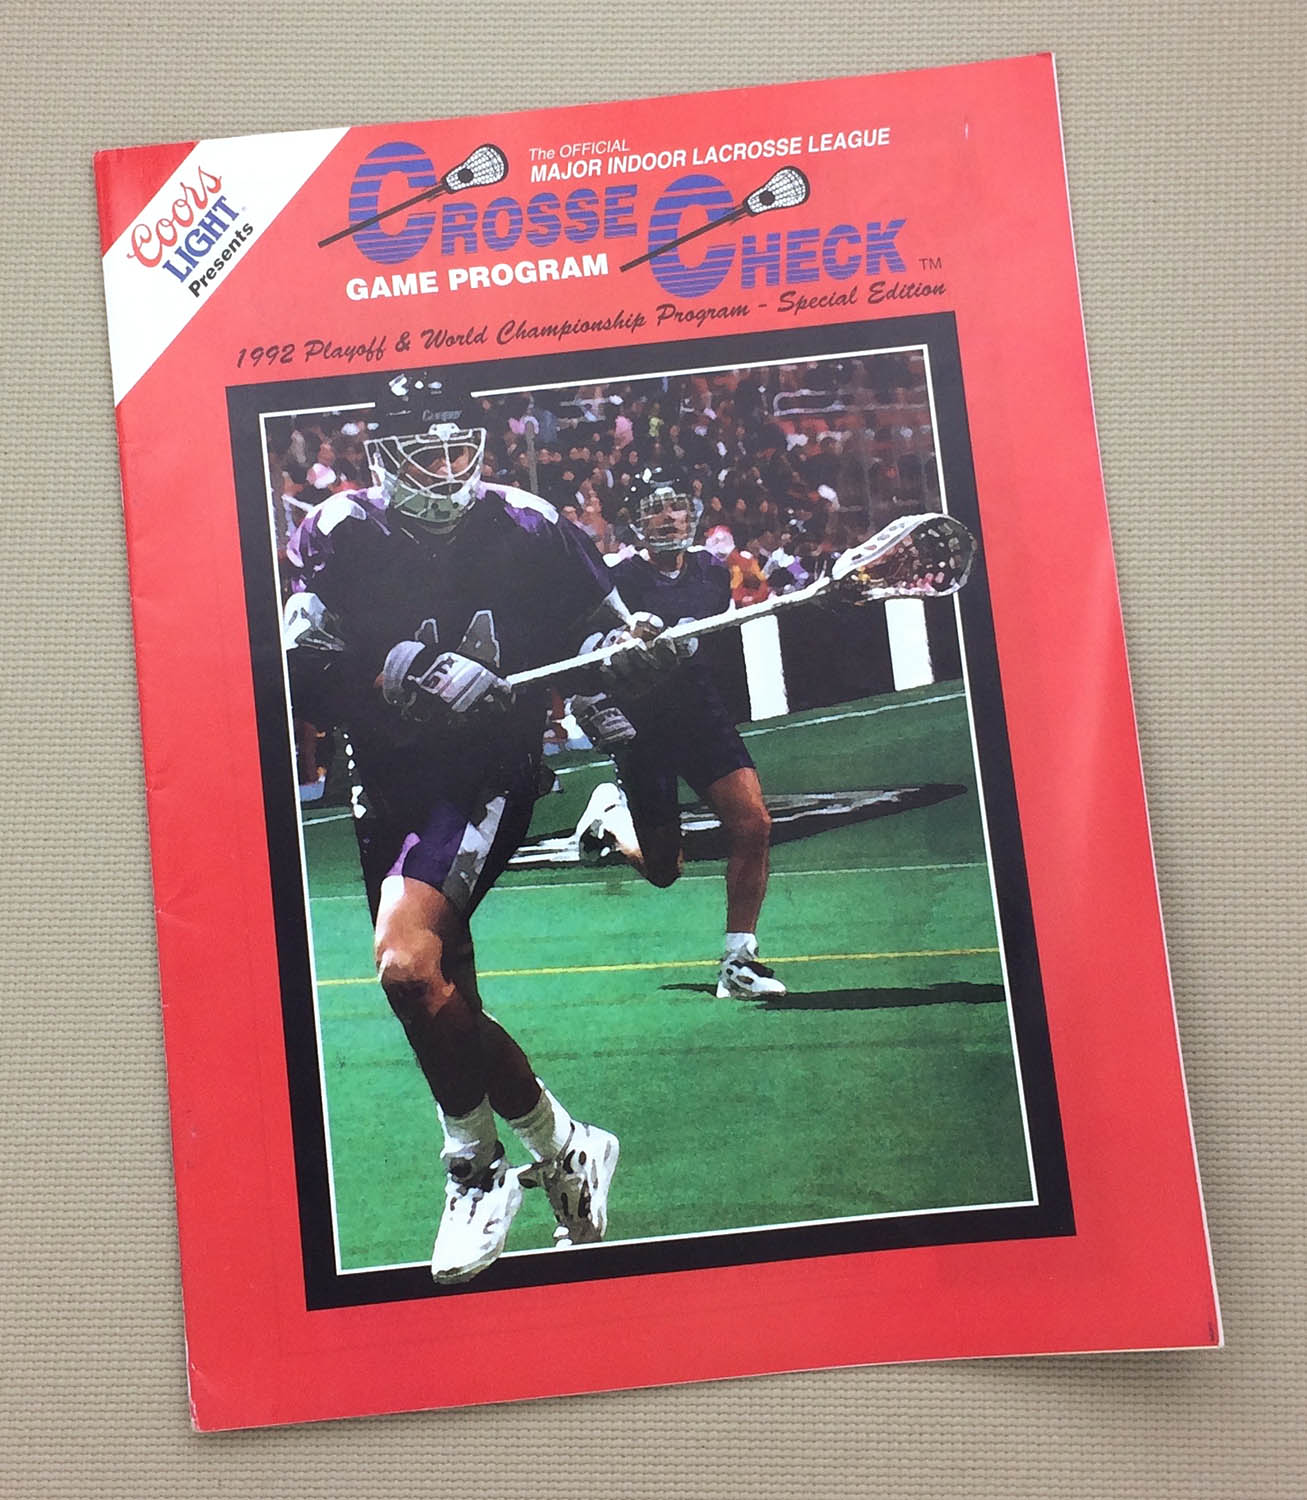 MILL 1992 Playoff Program